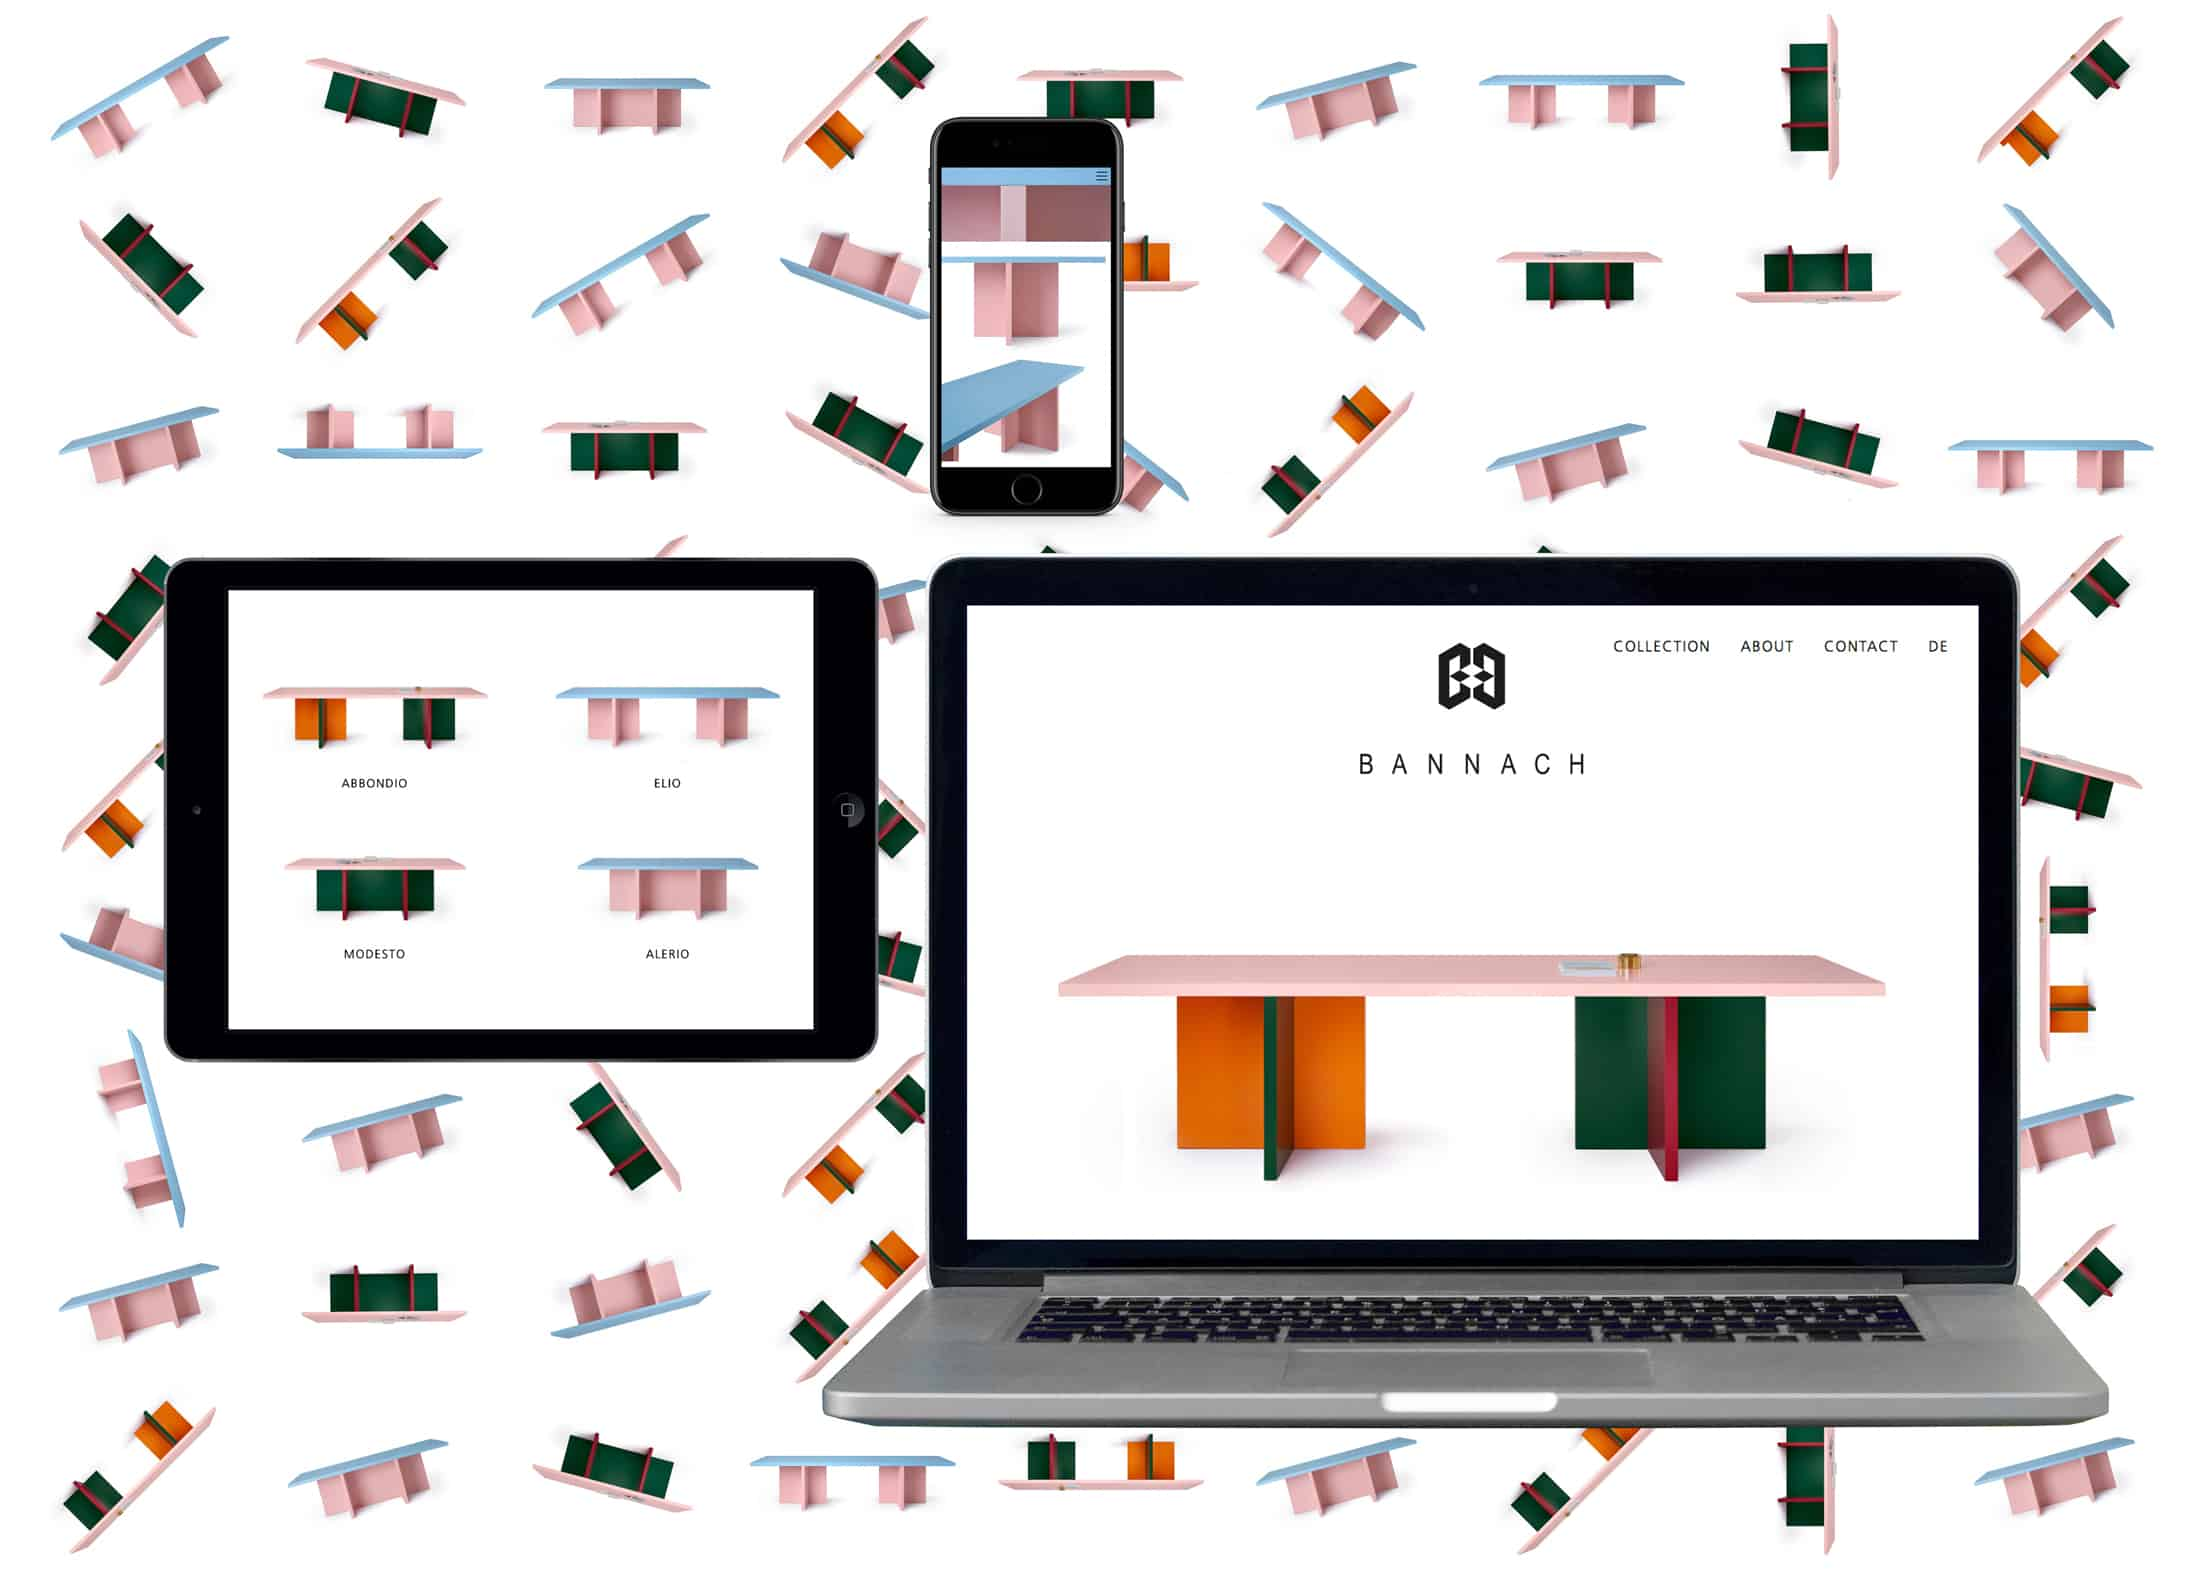 Photo of the responsive website design for furniture designer Moritz Bannach, shown on a mobile, tablet and desktop screen.